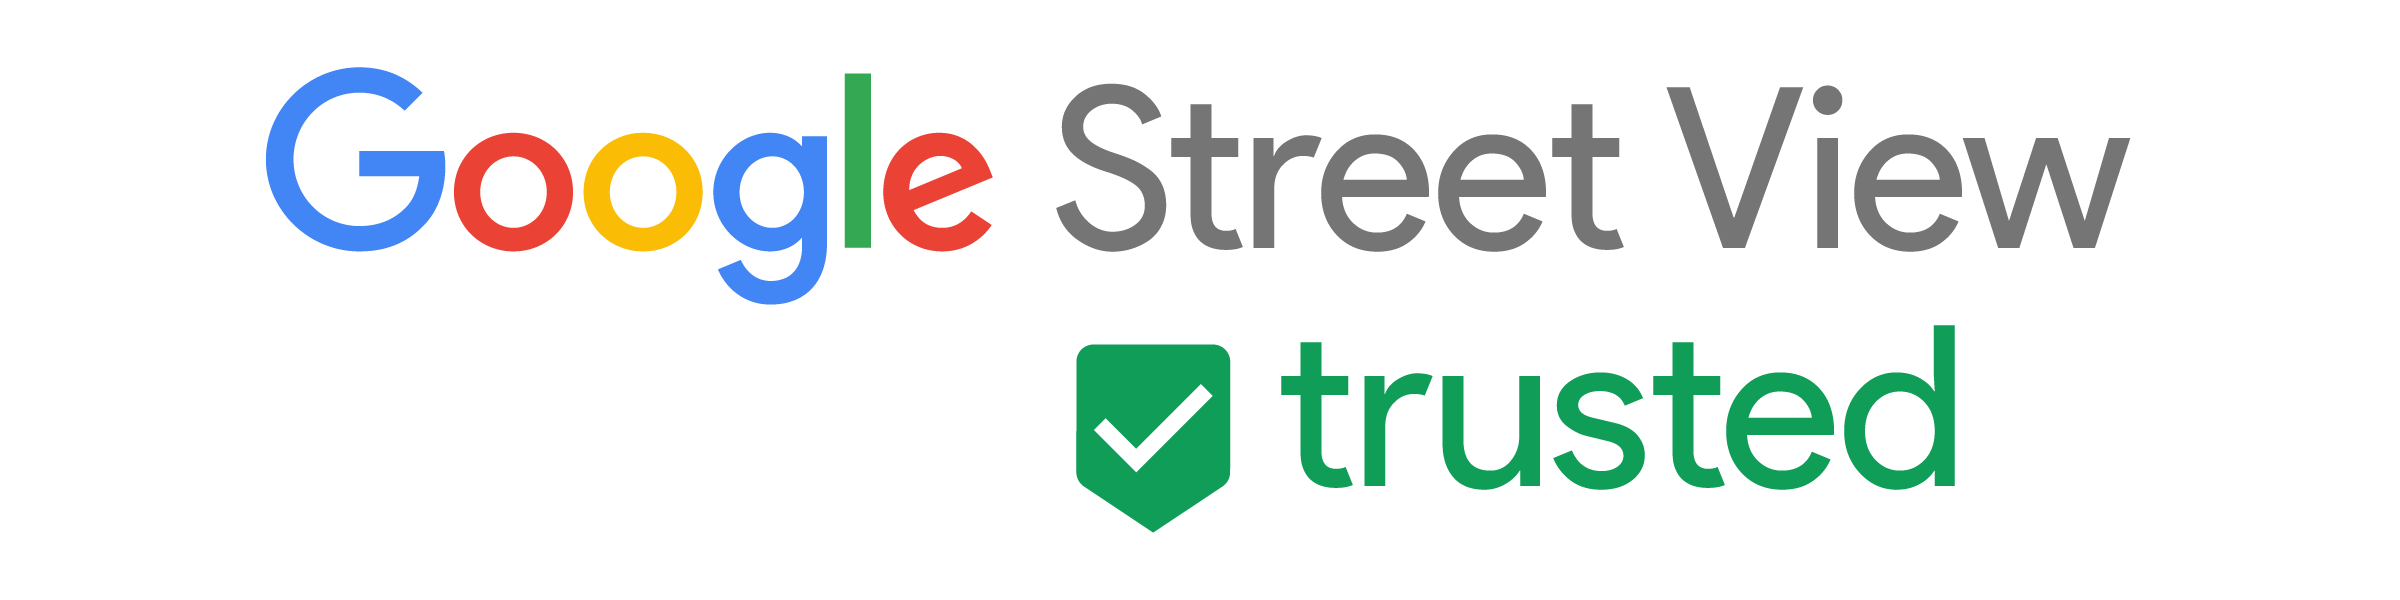 Google Street View Trusted Agency - RL Miller Photography